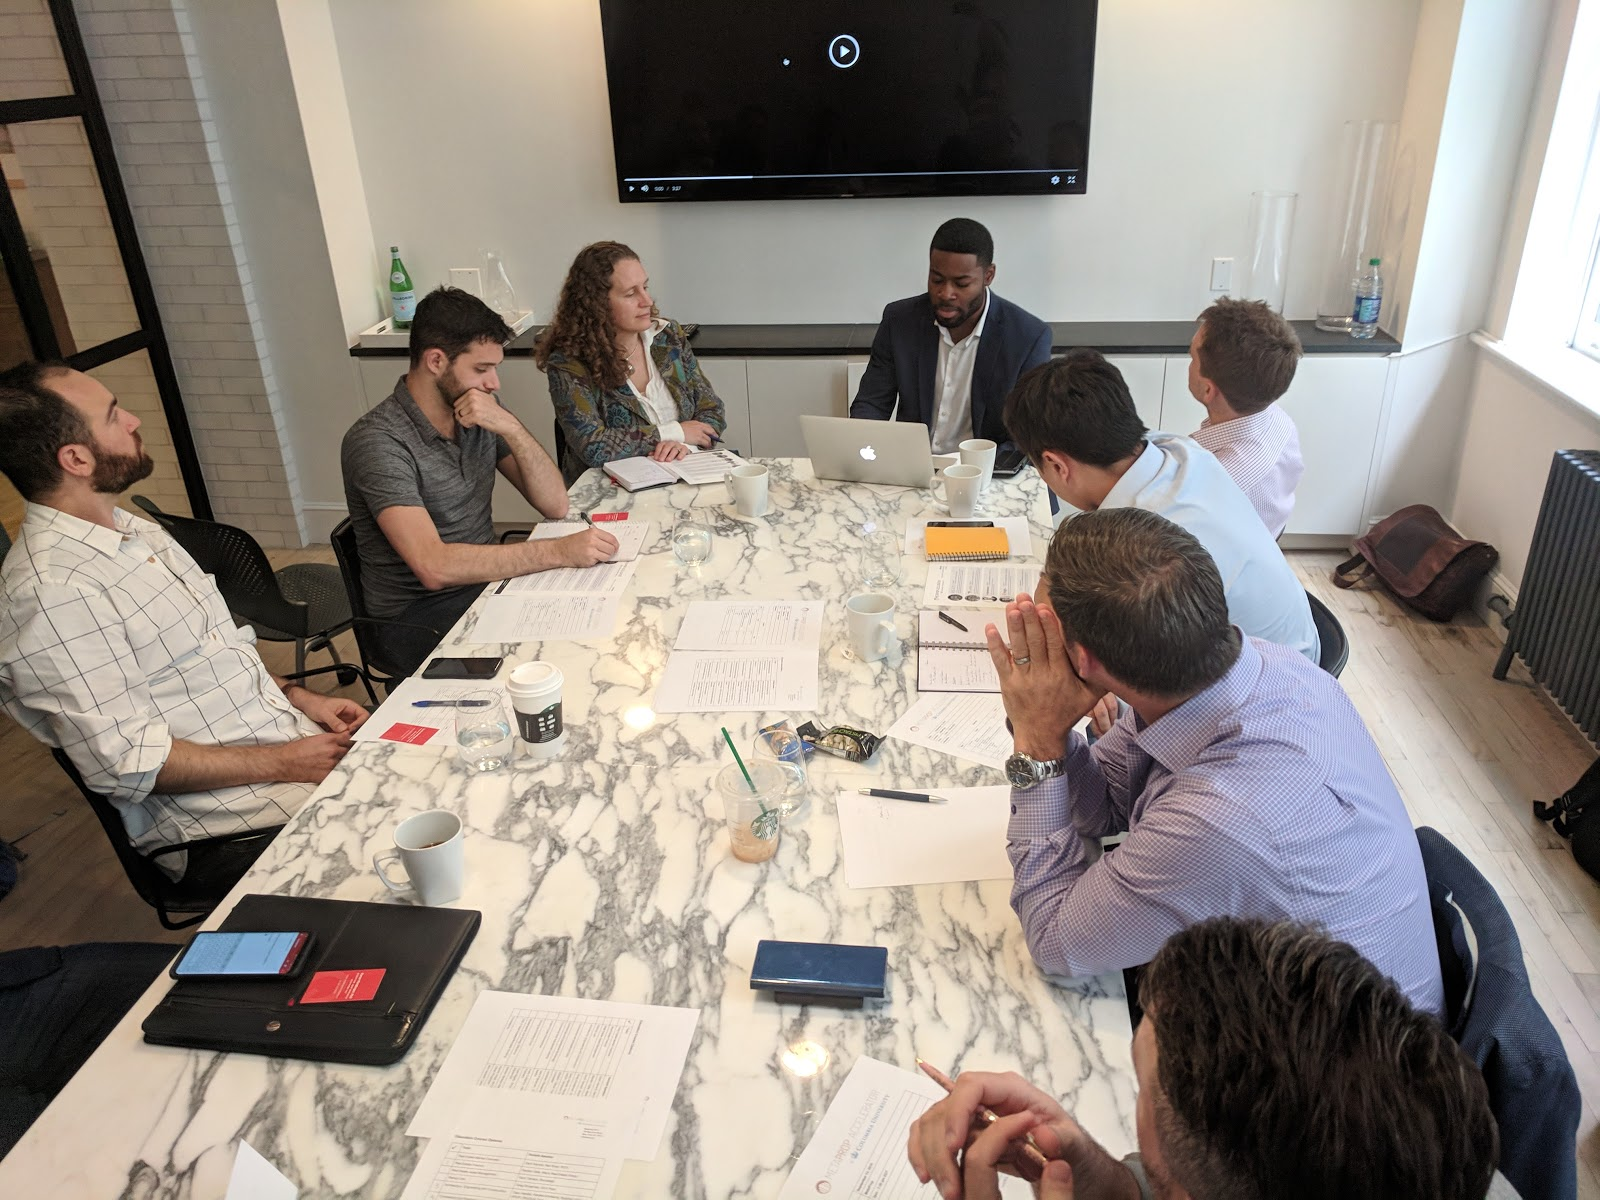 Orientation week featured the brand new MetaProp Accelerator Consortium with  Comcast machineQ ,  Cushman & Wakefield ,  First Republic Bank ,  Fox Rothschild  and  Inmobiliaria Colonial .